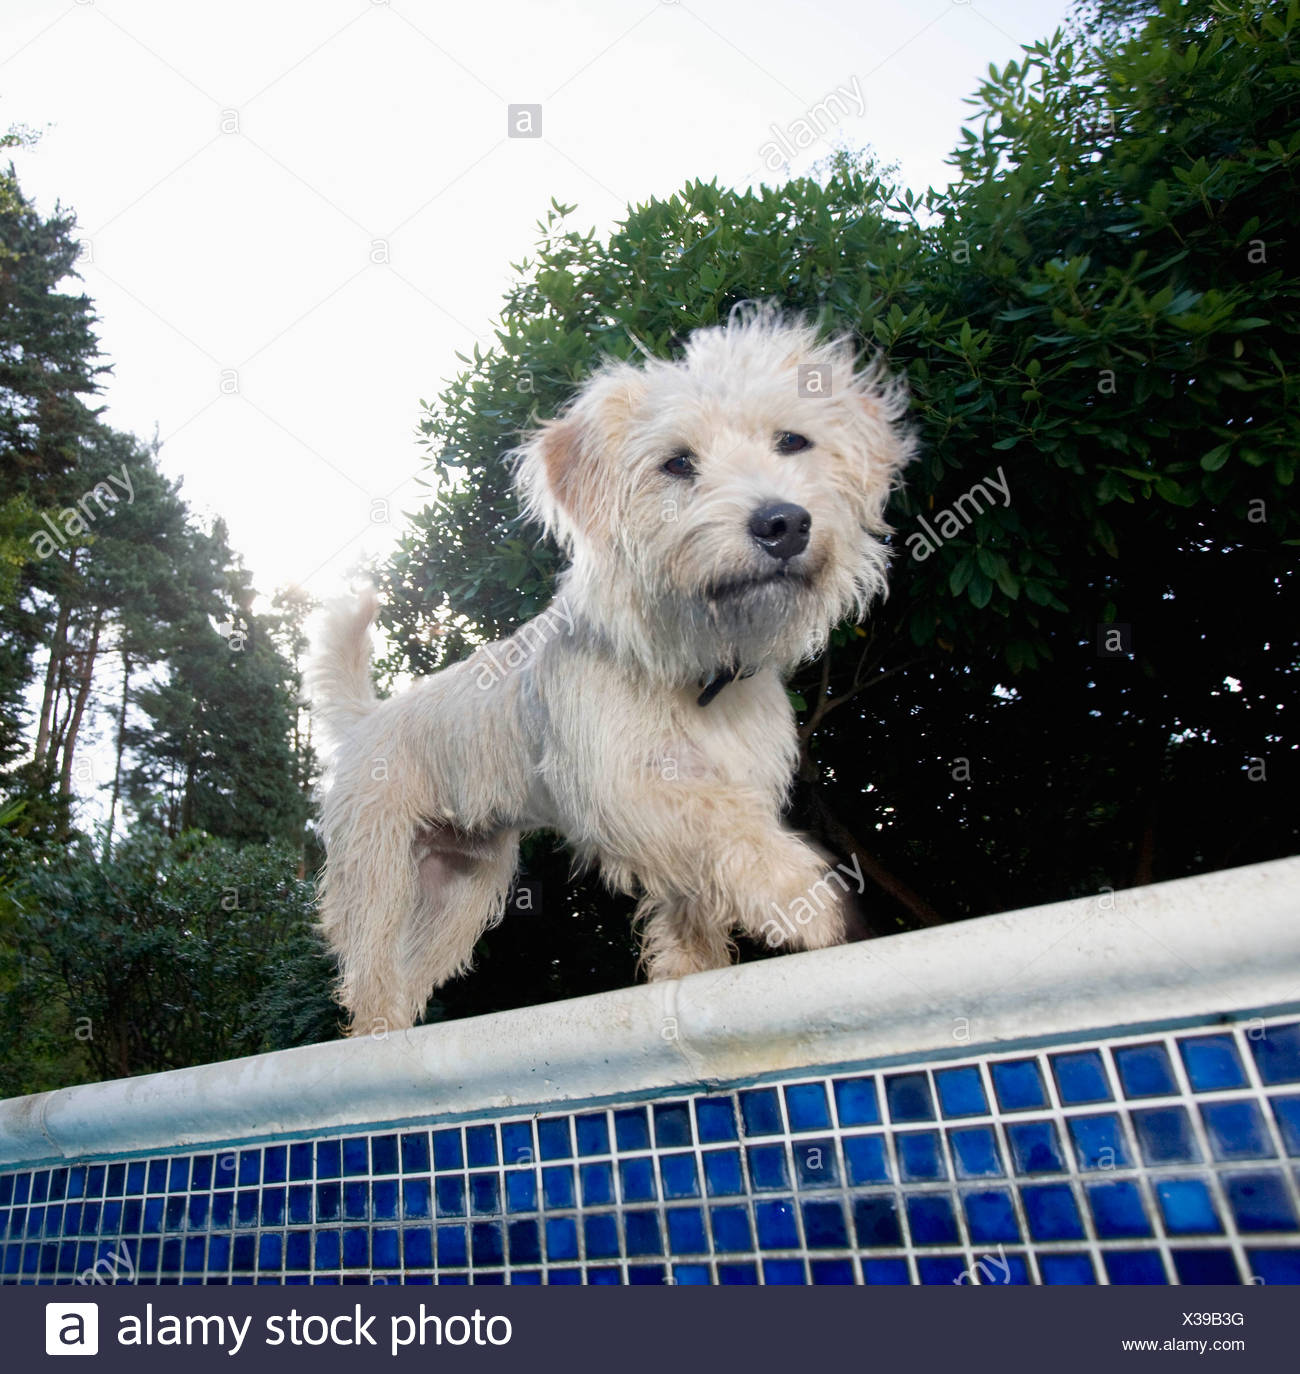 Dog walking at edge of pool - Stock Image